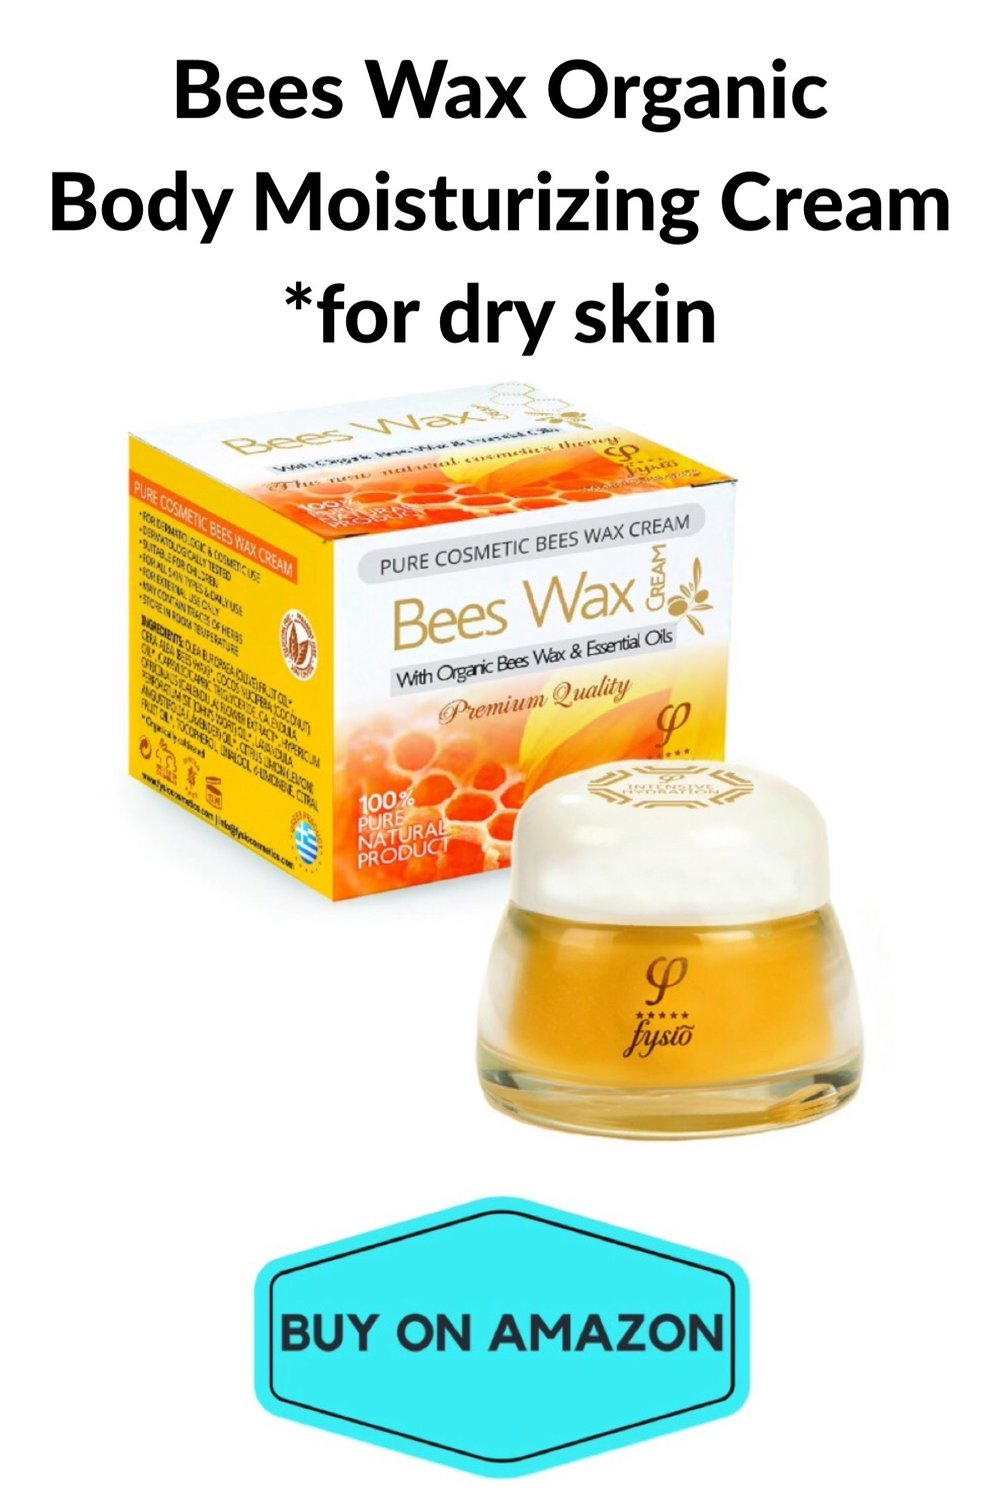 Bees Wax Organic Body Moisturizing Cream